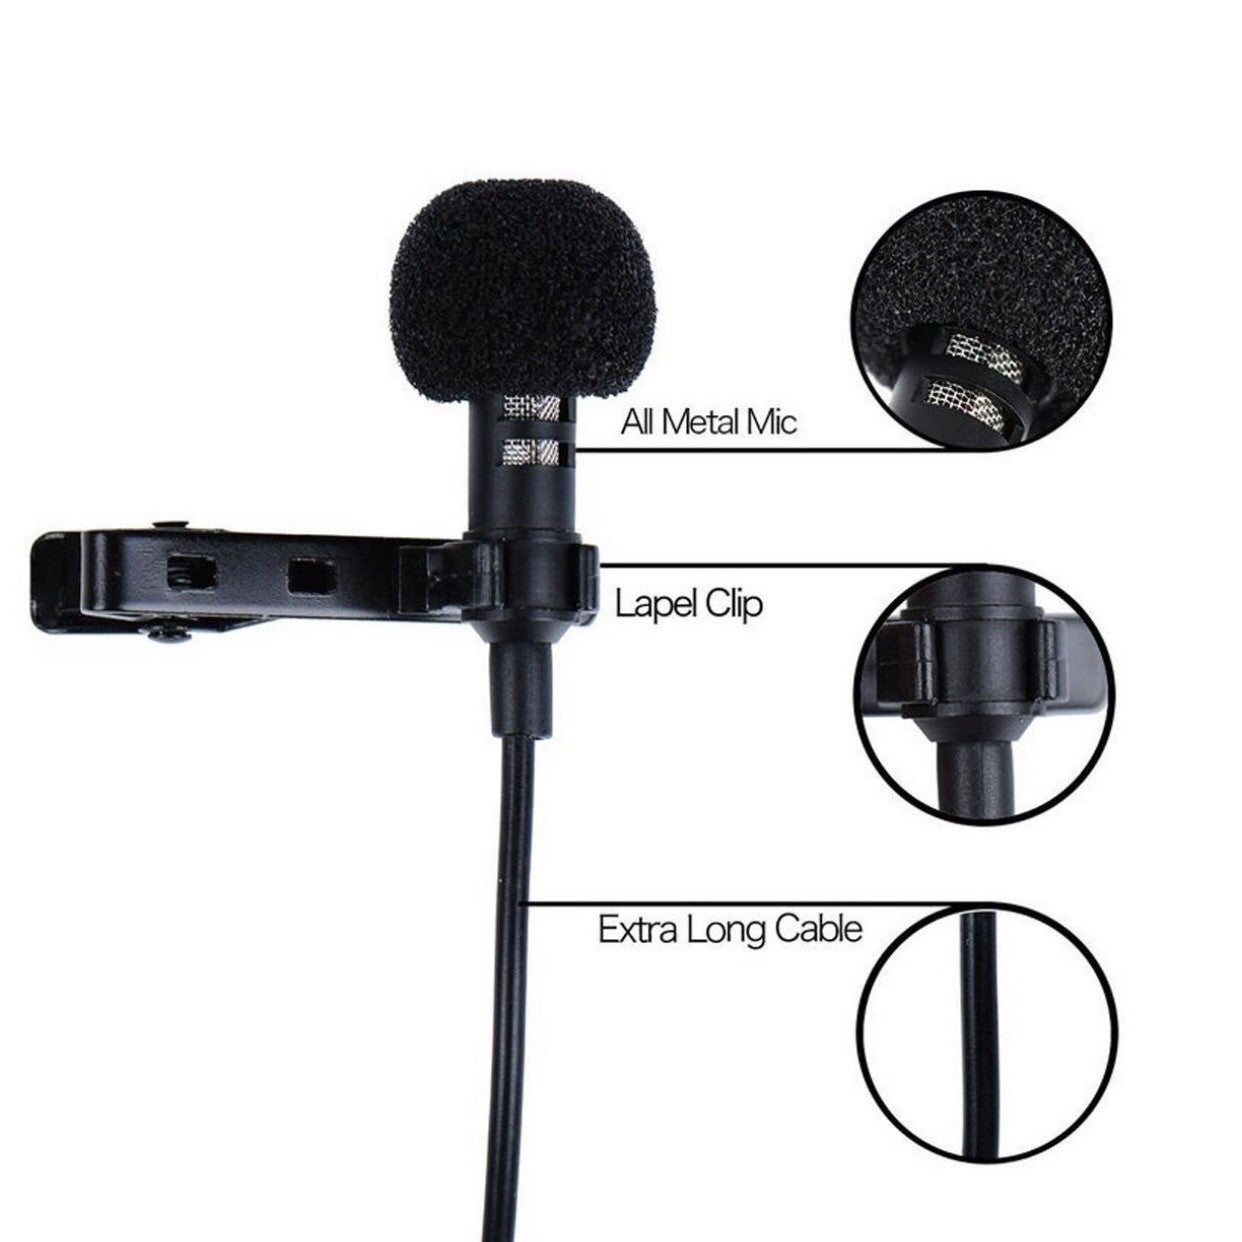 Affect Audio's® Professional Clip-on Lapel Omnidirectional Lavaliere Condenser Microphone